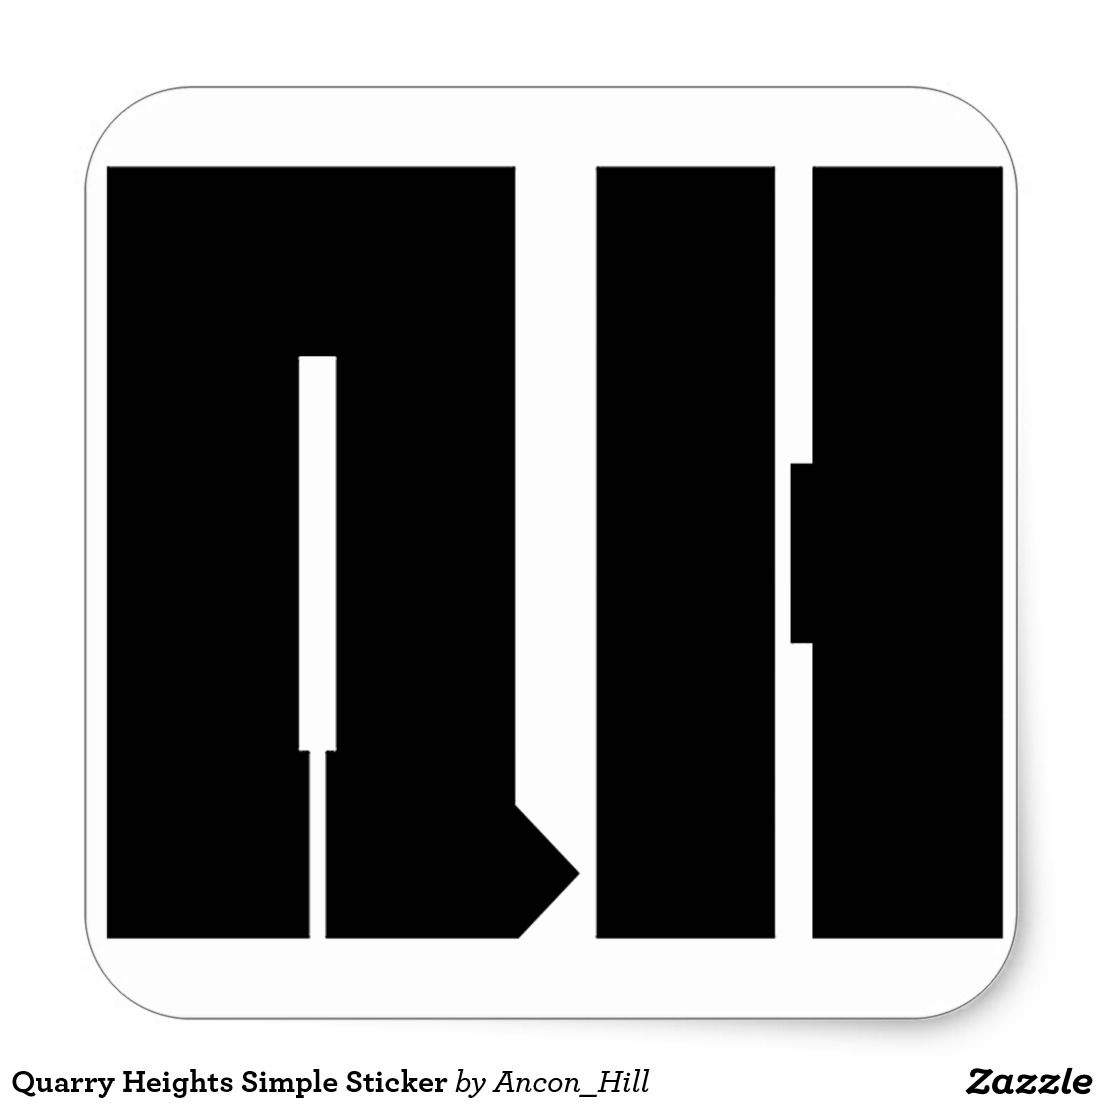 Quarry Heights Simple Sticker - PANAMA CANAL ZONE